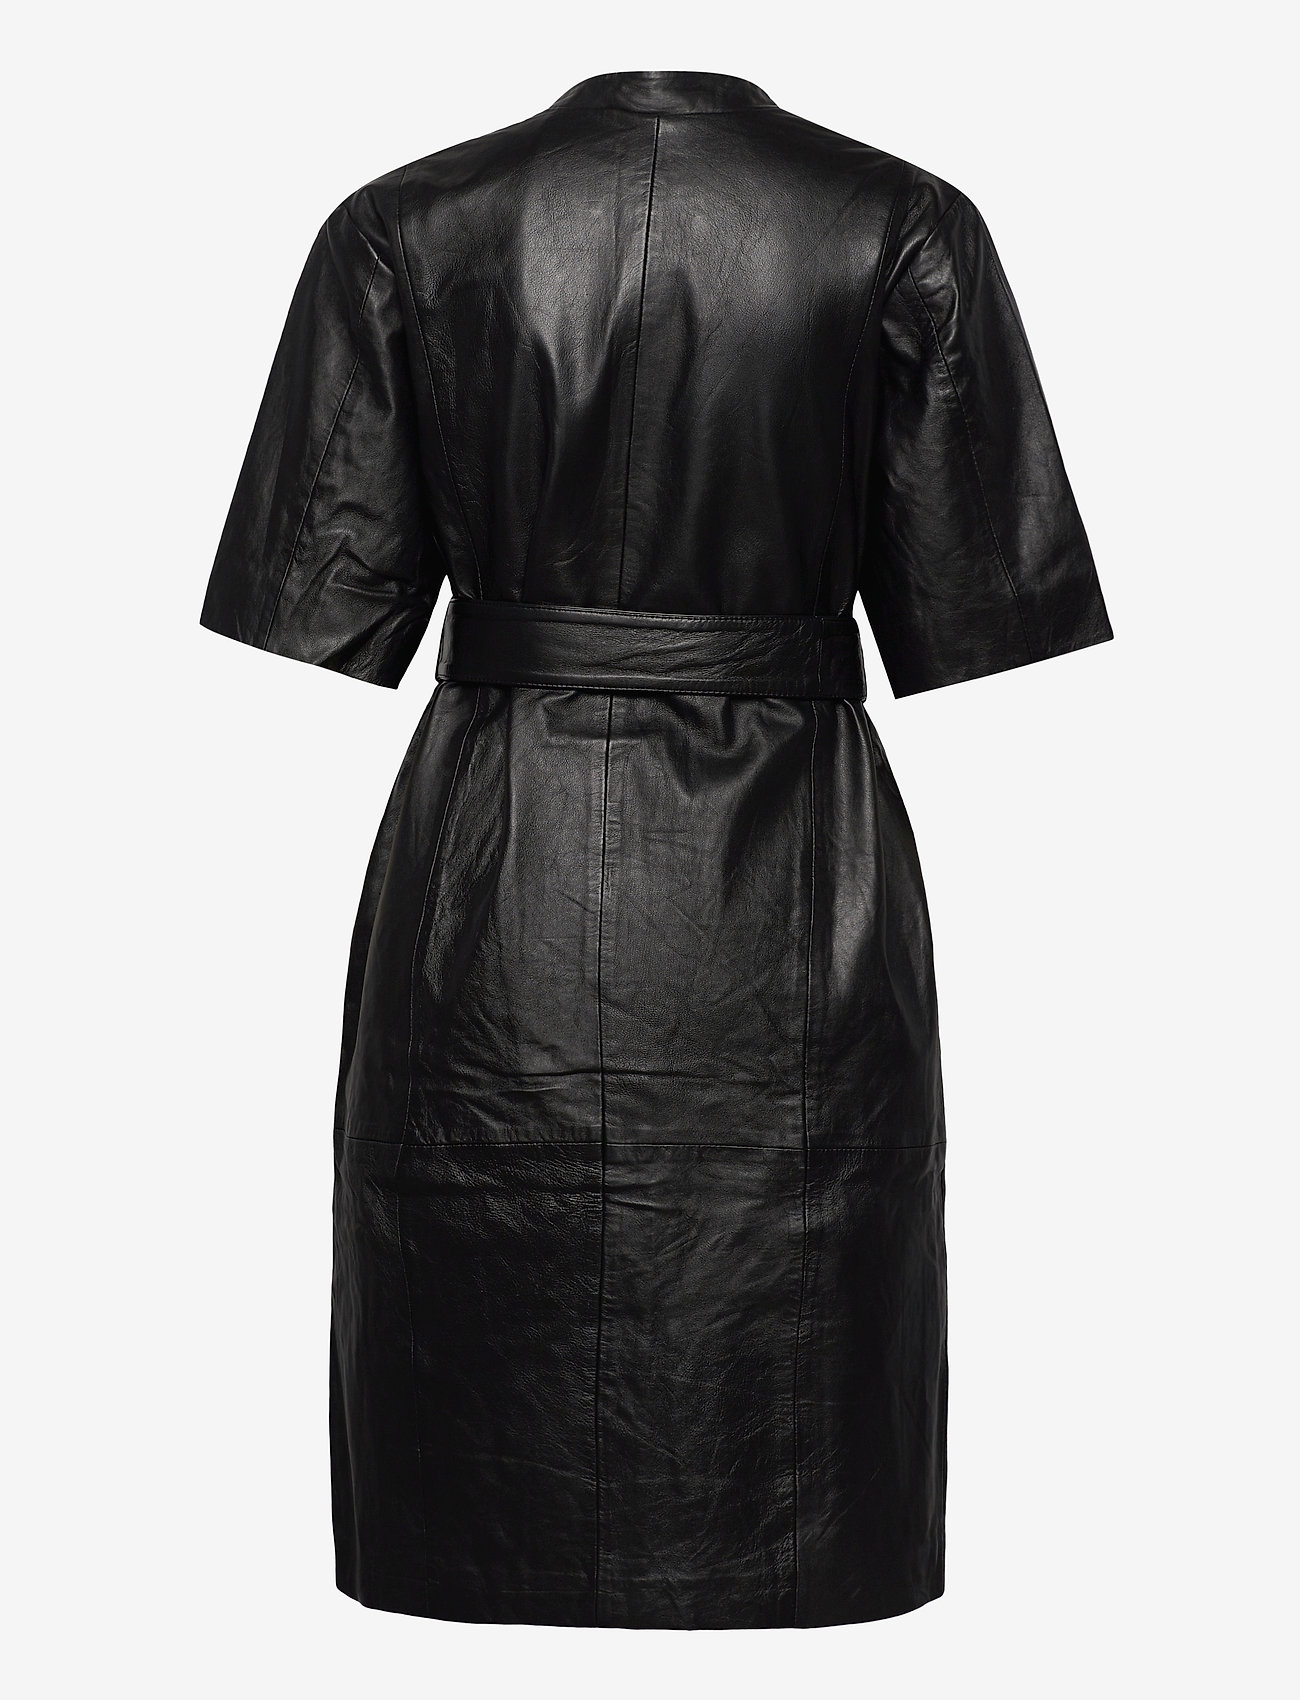 Selected Femme - SLFMARIE BELTED LEATHER DRESS B - midi dresses - black - 1